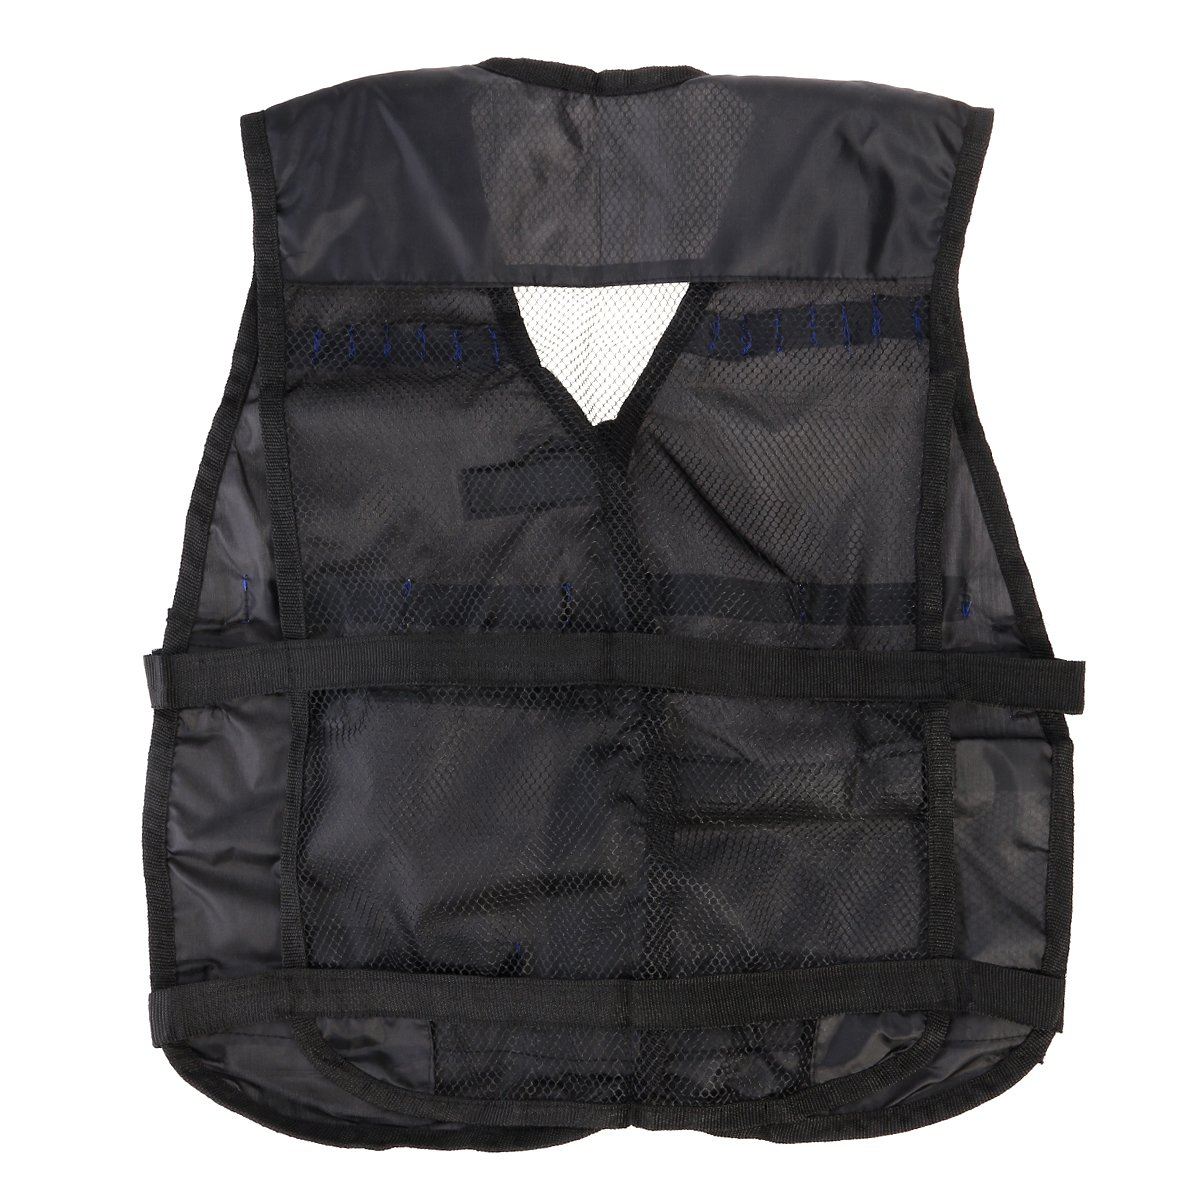 M Negro Kaimeng Tactical Chaleco Ajustable para Strike Elite Series ni/ños Nerf Battle